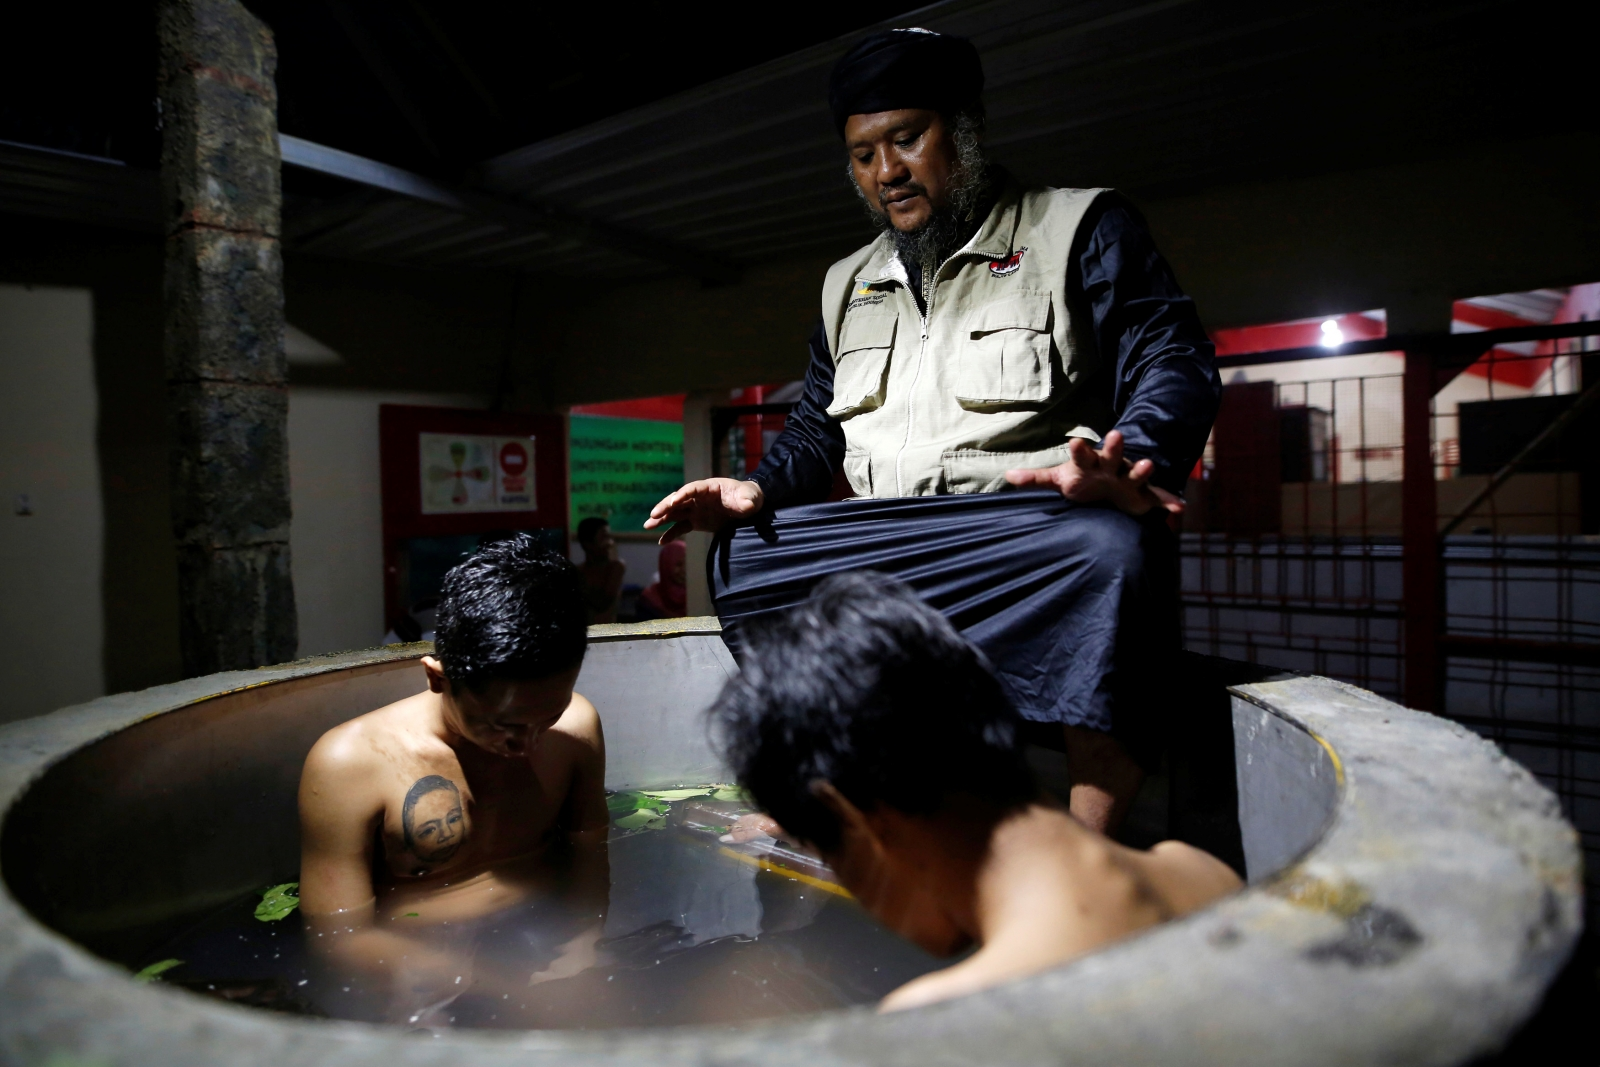 ... : War on drugs continues but funding for rehabilitation dwindles